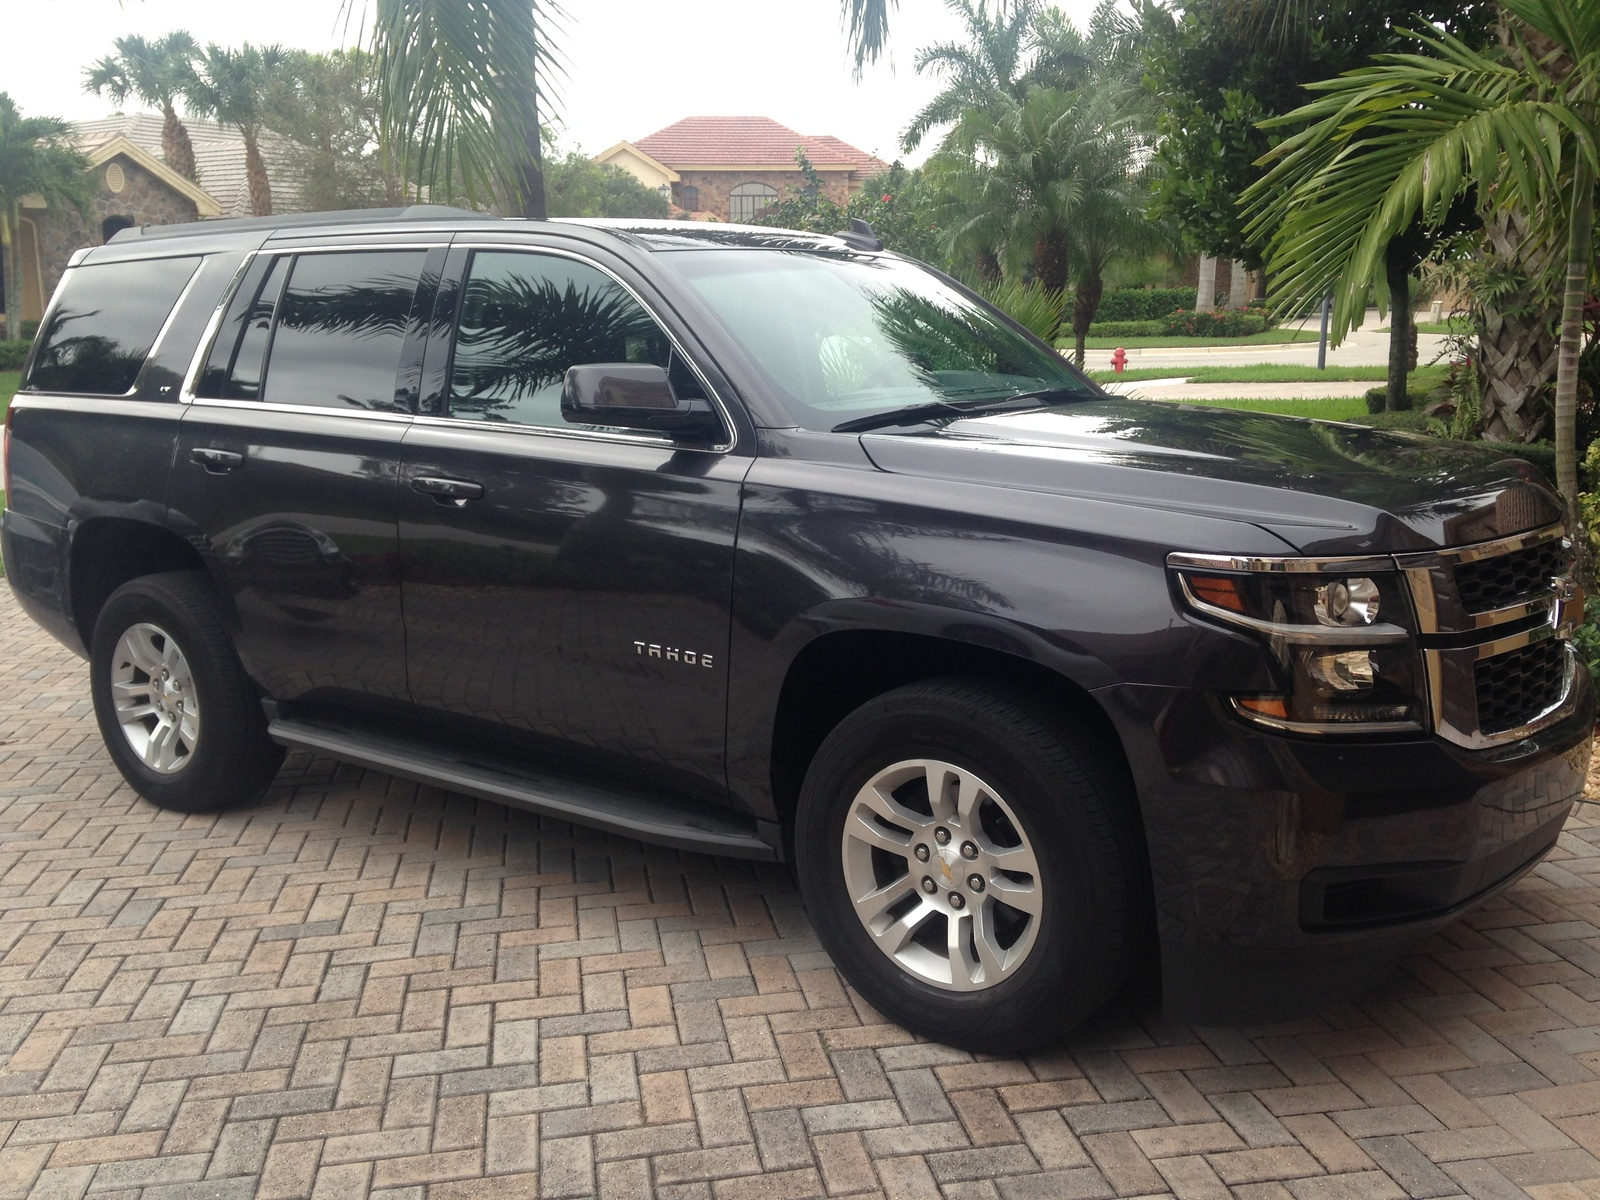 new 2015 2016 chevrolet tahoe for sale cargurus. Black Bedroom Furniture Sets. Home Design Ideas